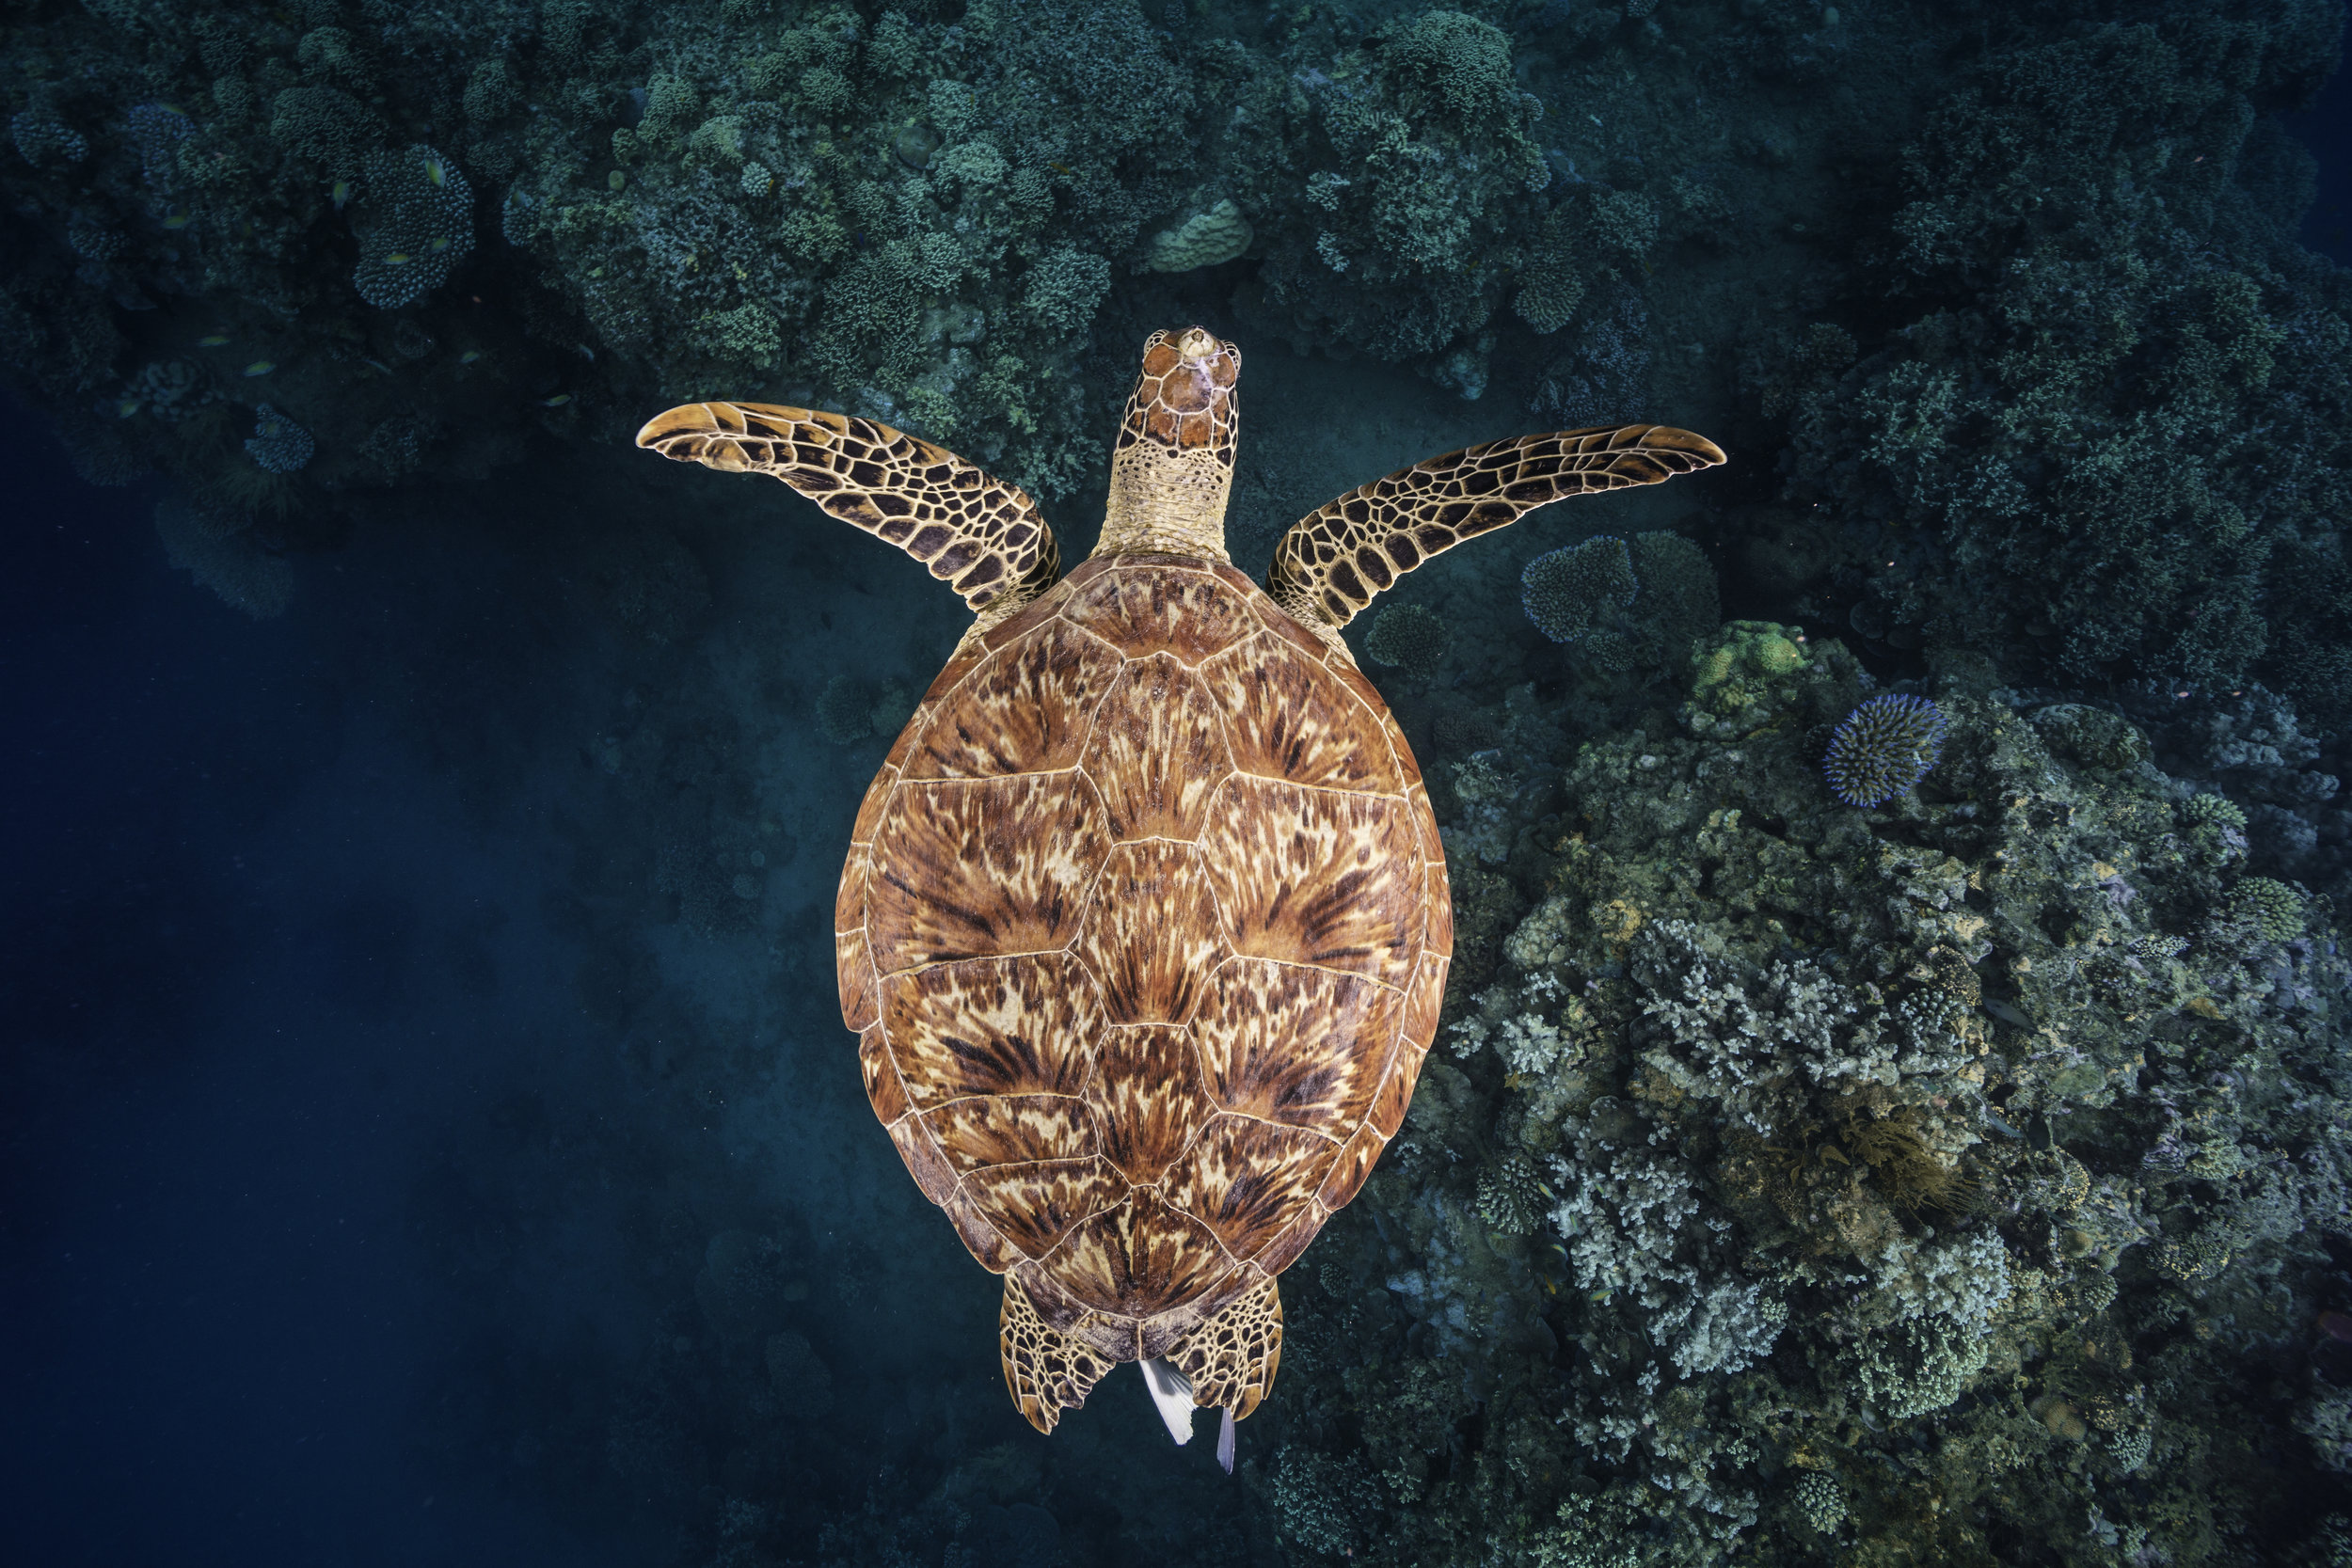 Green turtle in Mayotte. © Gaby Barathieu / Coral Reef Image Bank